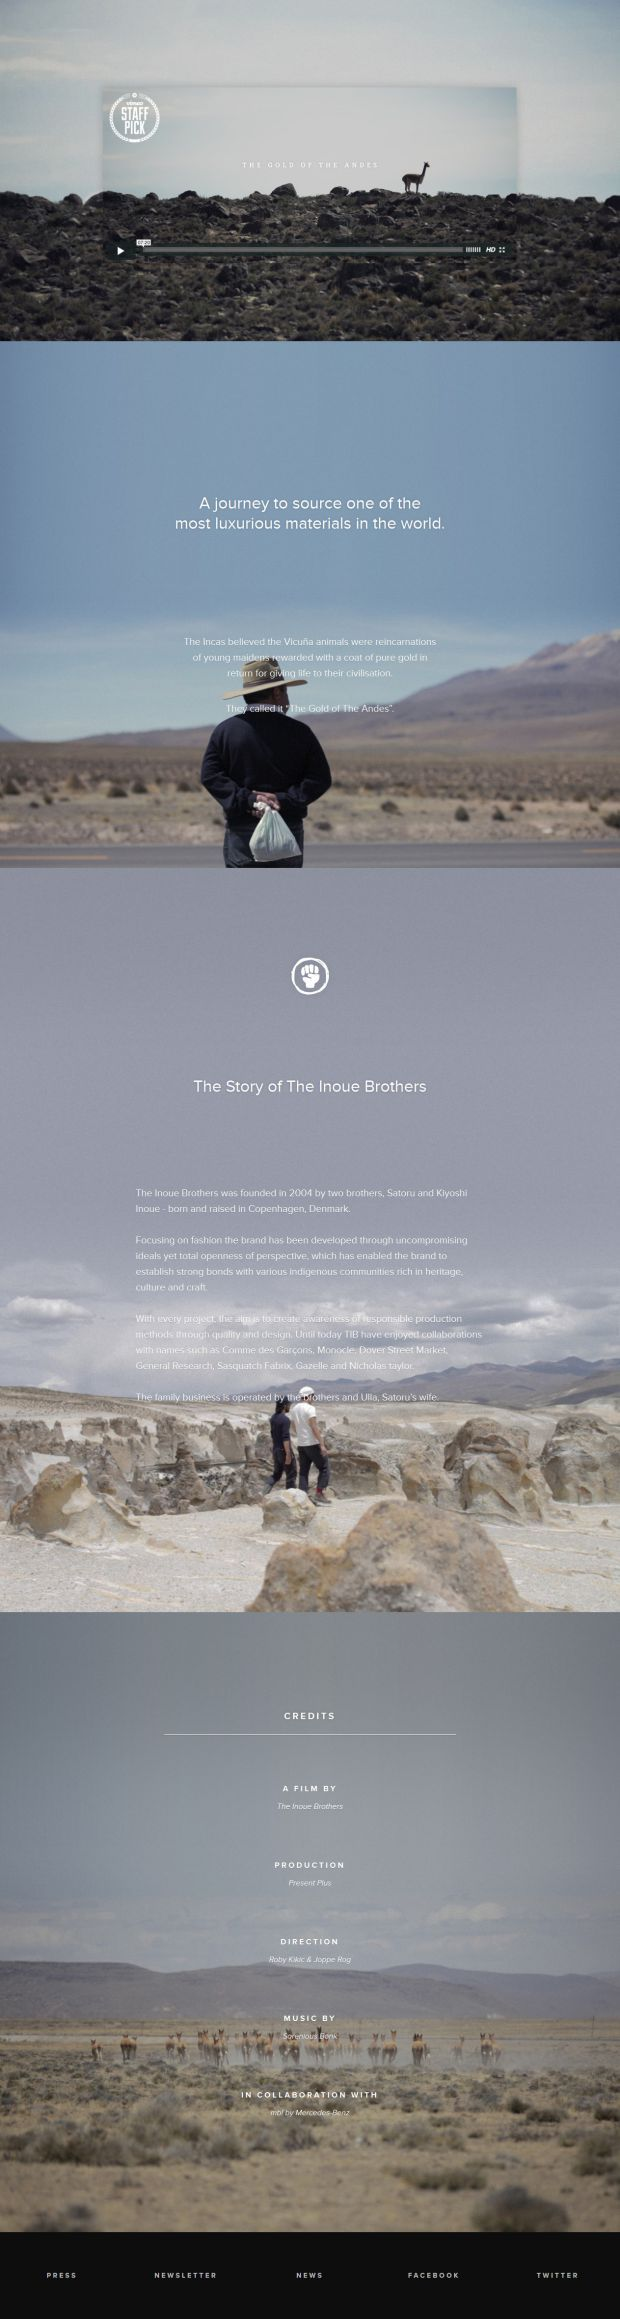 The Gold of The Andes - #Webdesign #inspiration www.niceoneilike.com